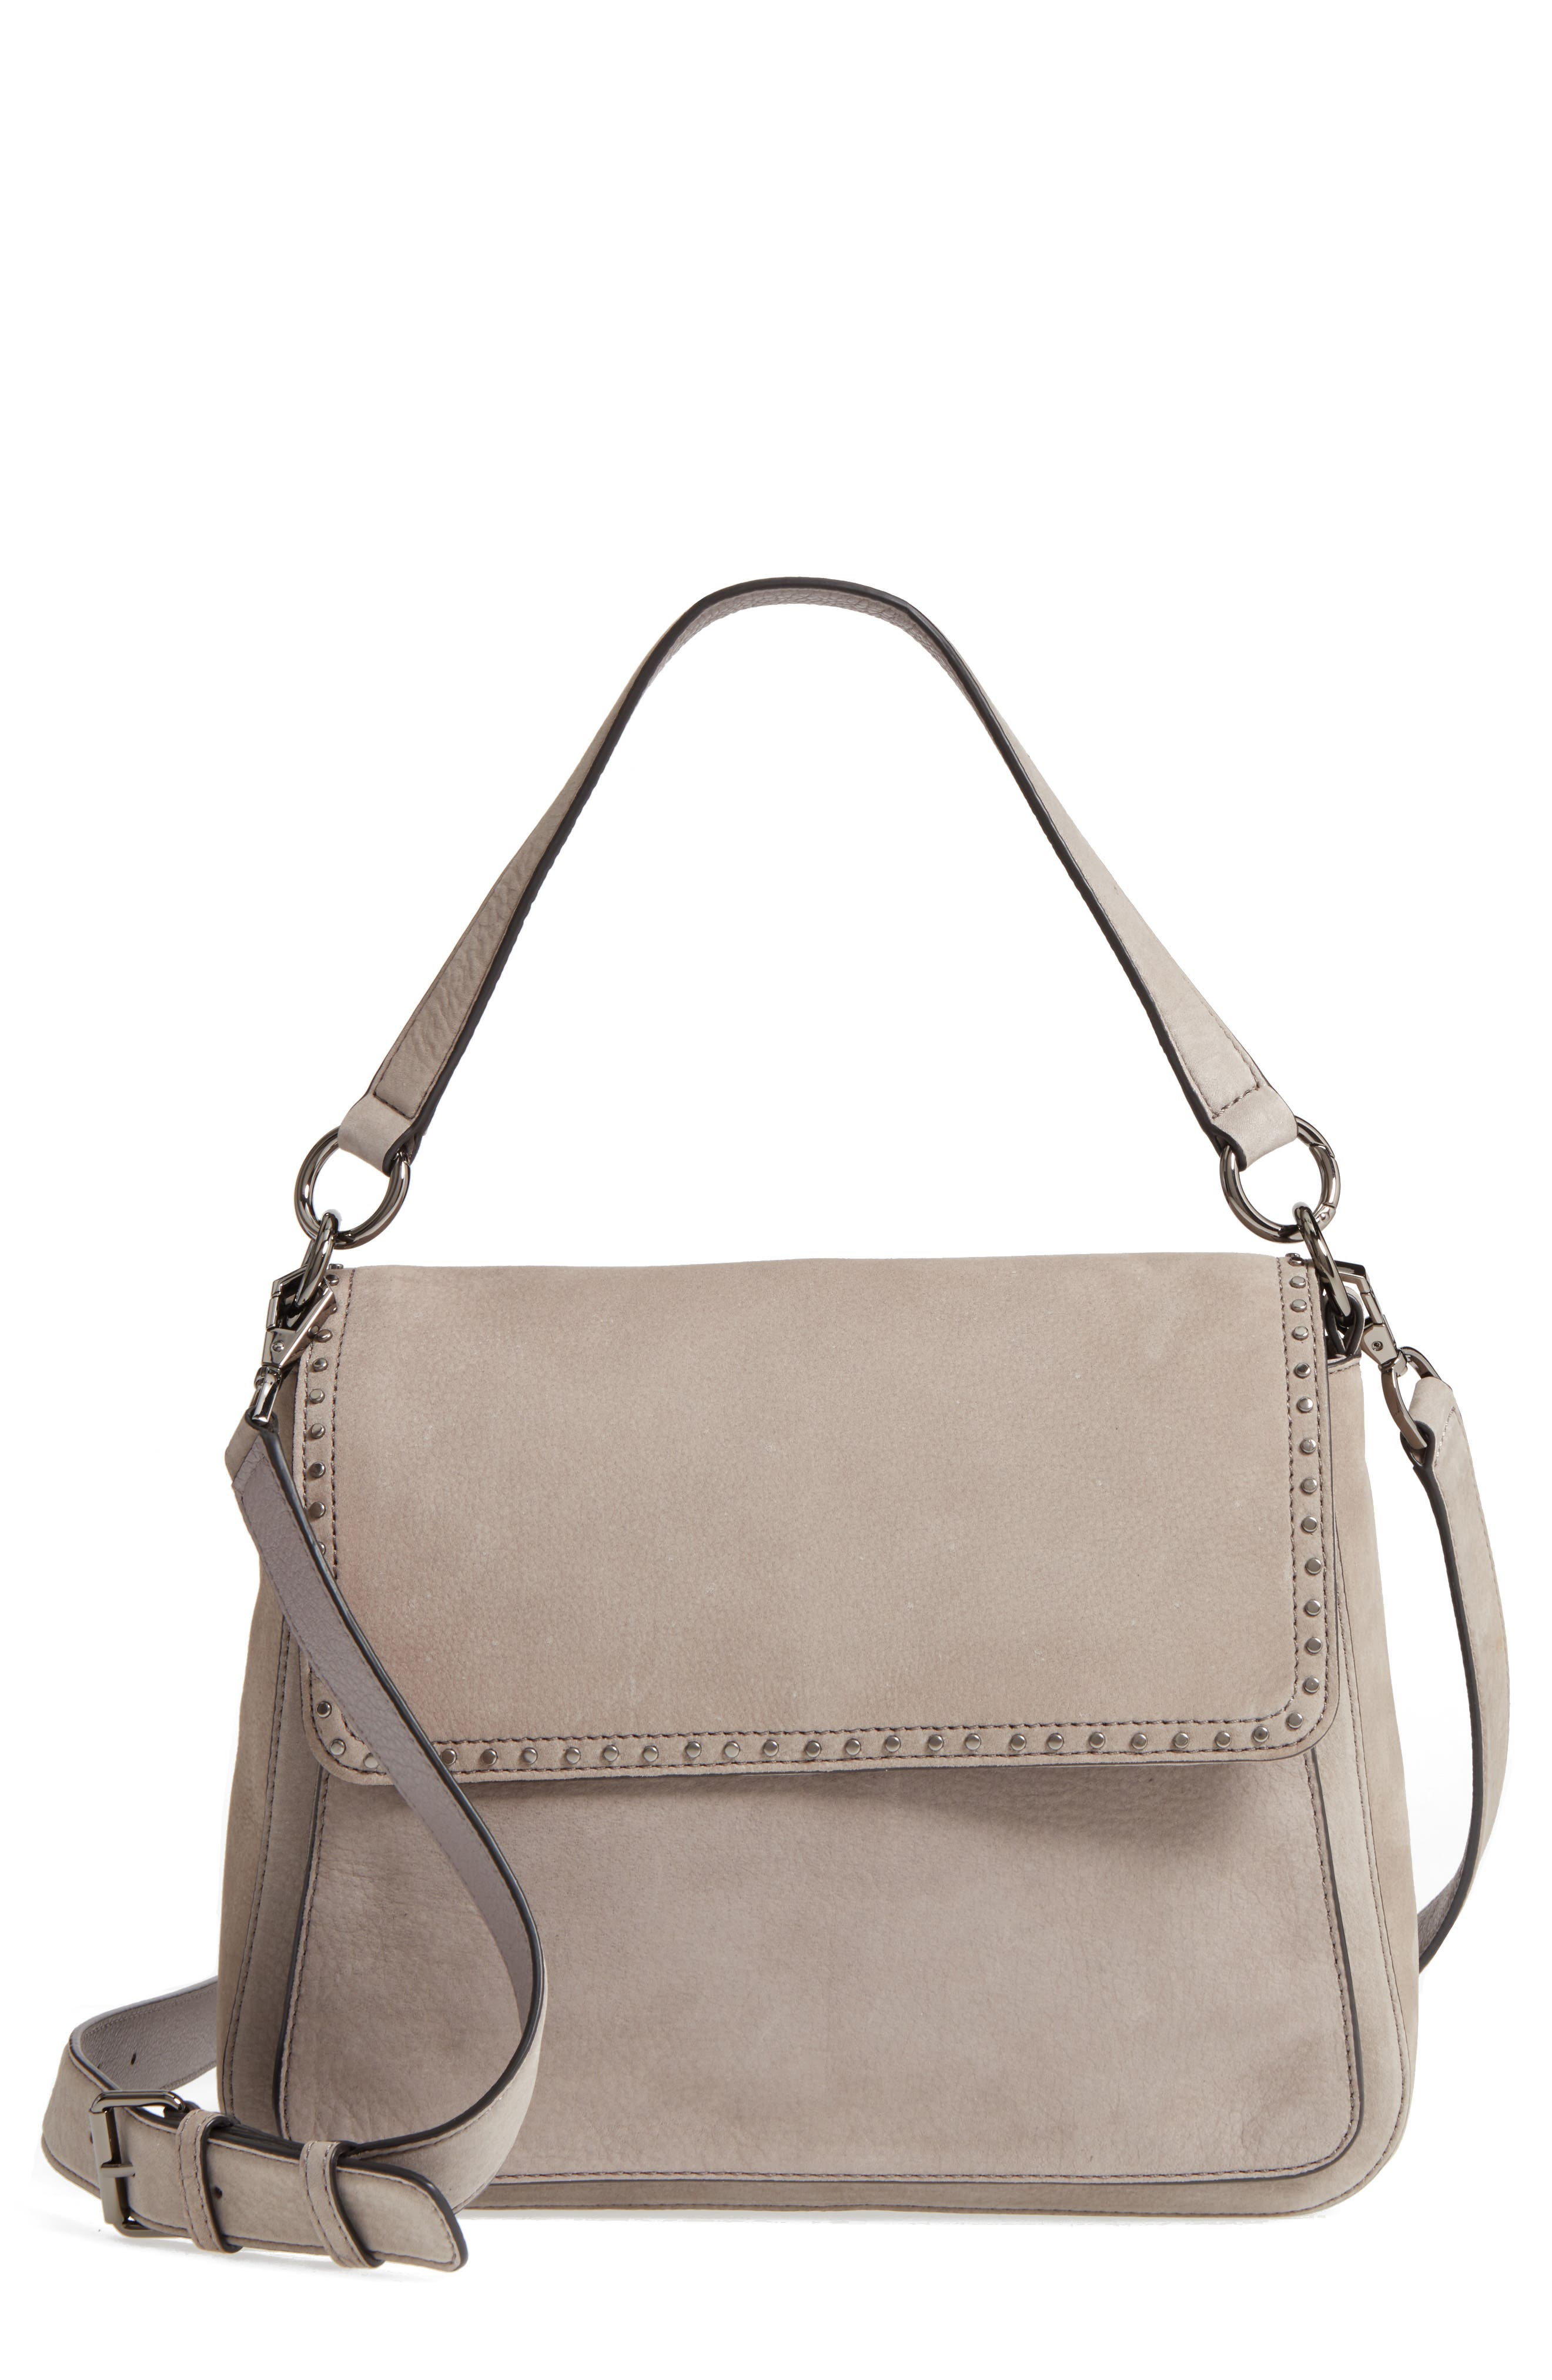 Rebecca Minkoff Moonwalking Top Handle Satchel